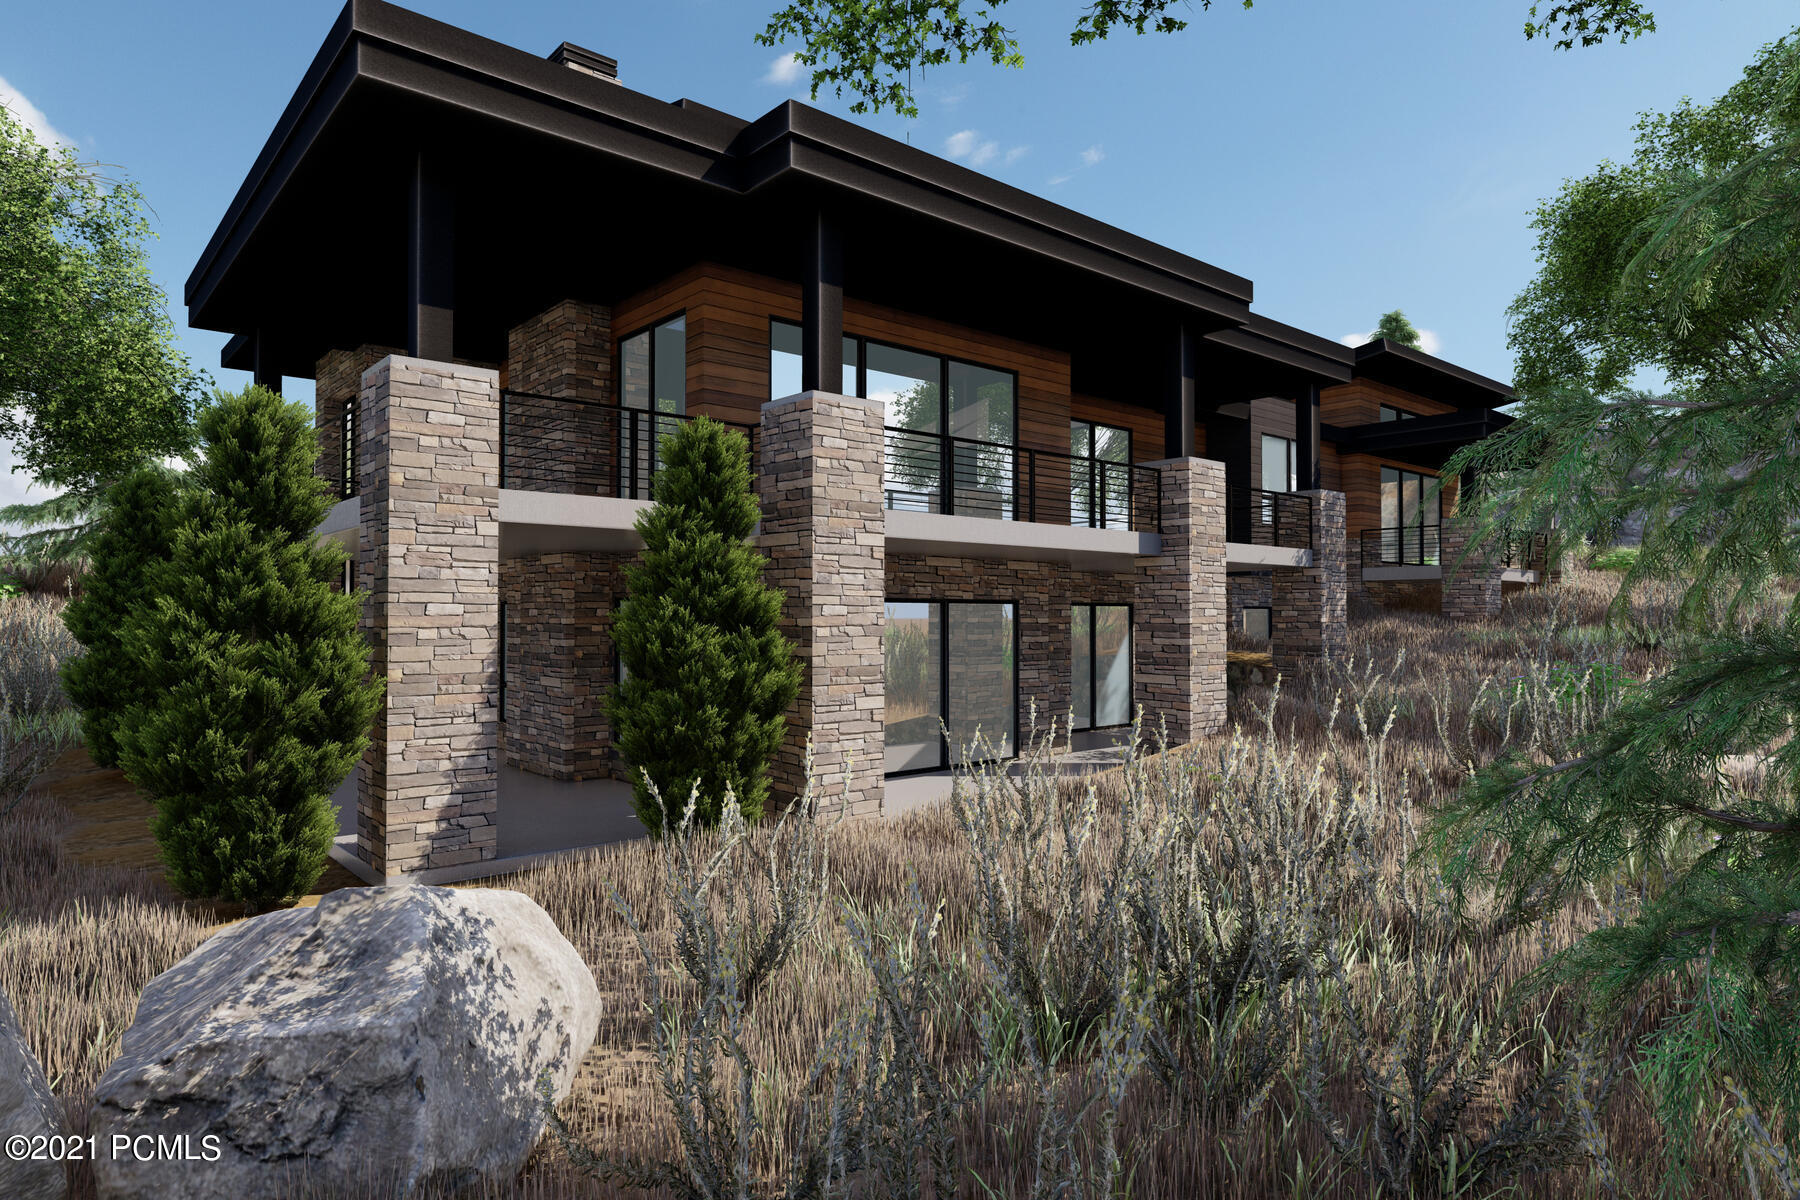 This brand-new (to-be-built) home will be nestled on a gently sloping east-facing lot in the desirable Promontory neighborhood of Buffalo Jump. Features include 5 bedrooms, 6 baths, a 3-car garage, and high-end appliances and custom finishes throughout. The best part, however, is that you can customize this home to your liking! Time has been allocated with the interior design team to allow for finish selections such as: appliances, light & plumbing fixtures, as well as all hard surfaces & flooring to be selected by the incoming buyer. The design team is also happy to simply handle all of the selections for a buyer as well. What is being offered here is a completely flexible, buyer-friendly process! Call the listing agent for plans and allowances, or to arrange a site visit.